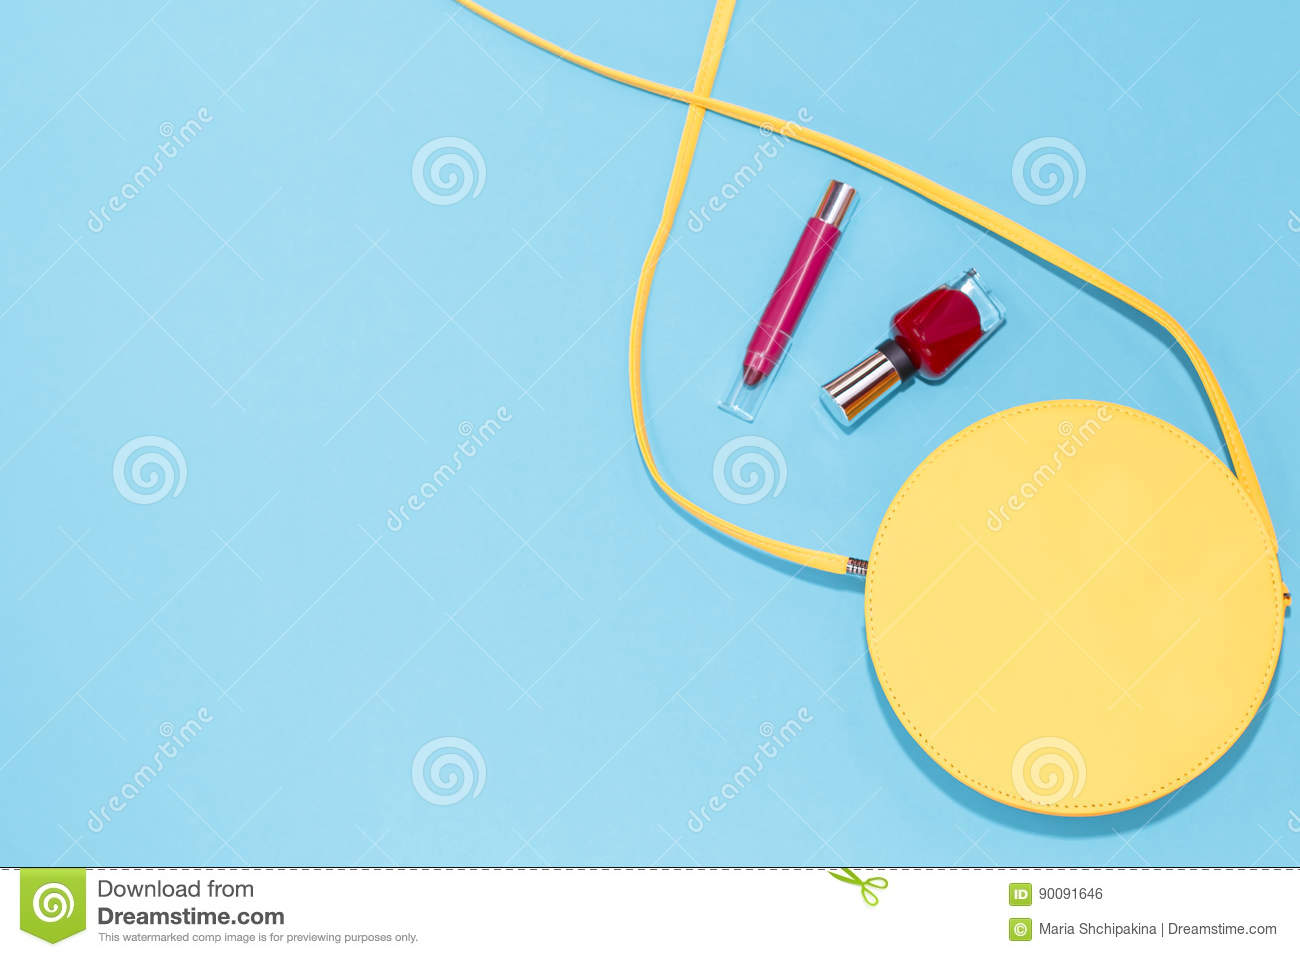 Round yellow purse, red nail polish, red lipstick on a pastel blue background.